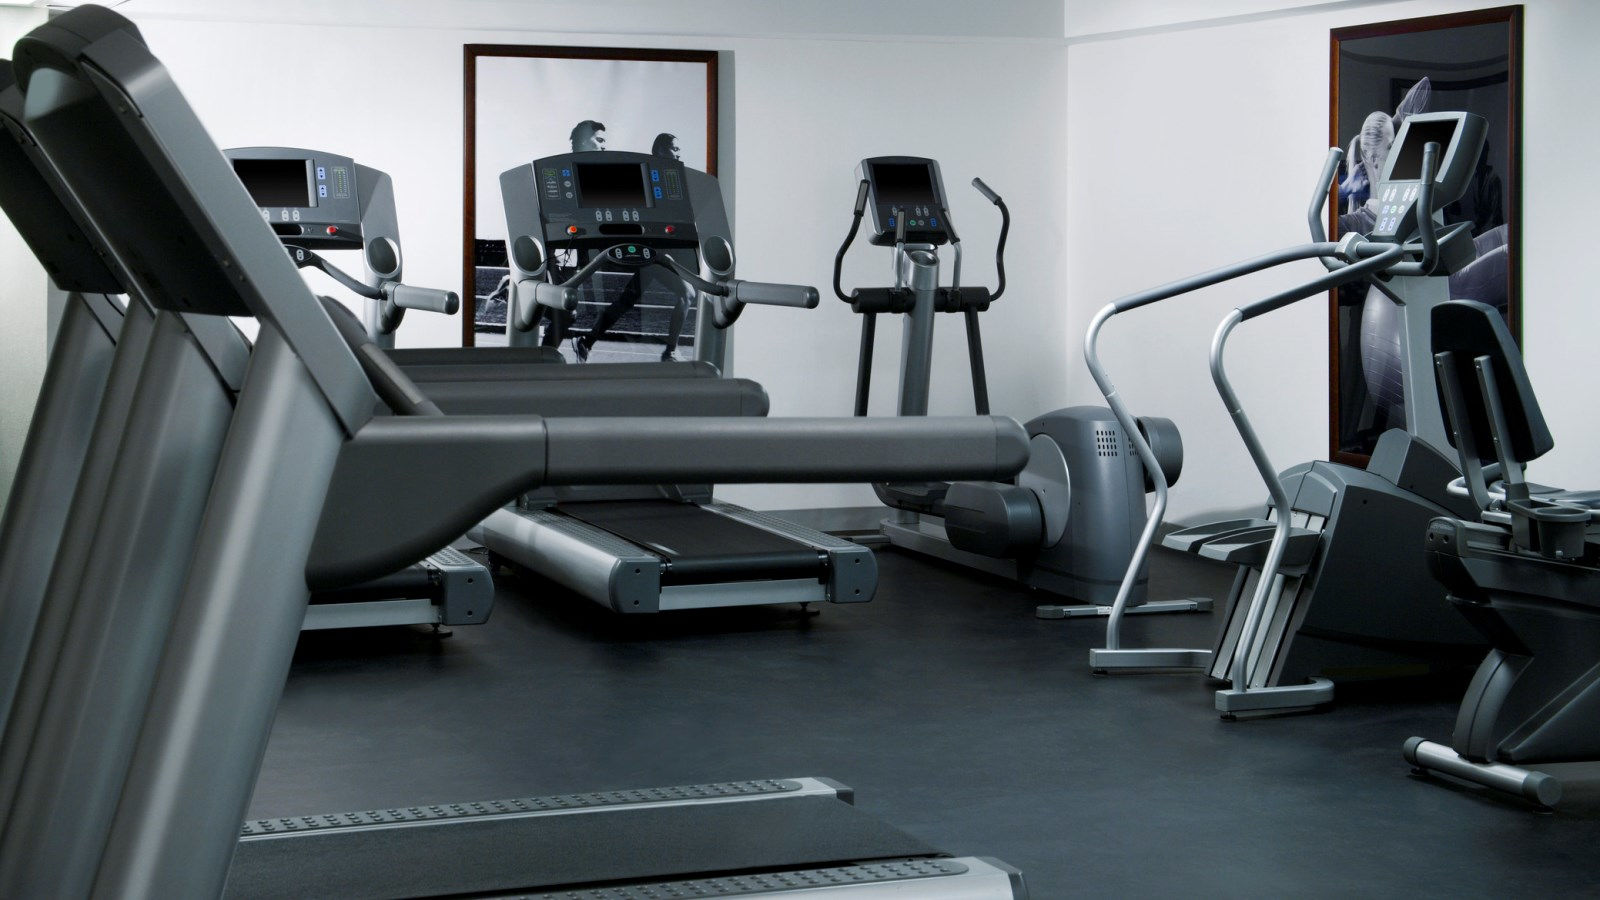 Toronto Hotel Features - Fitness Centre